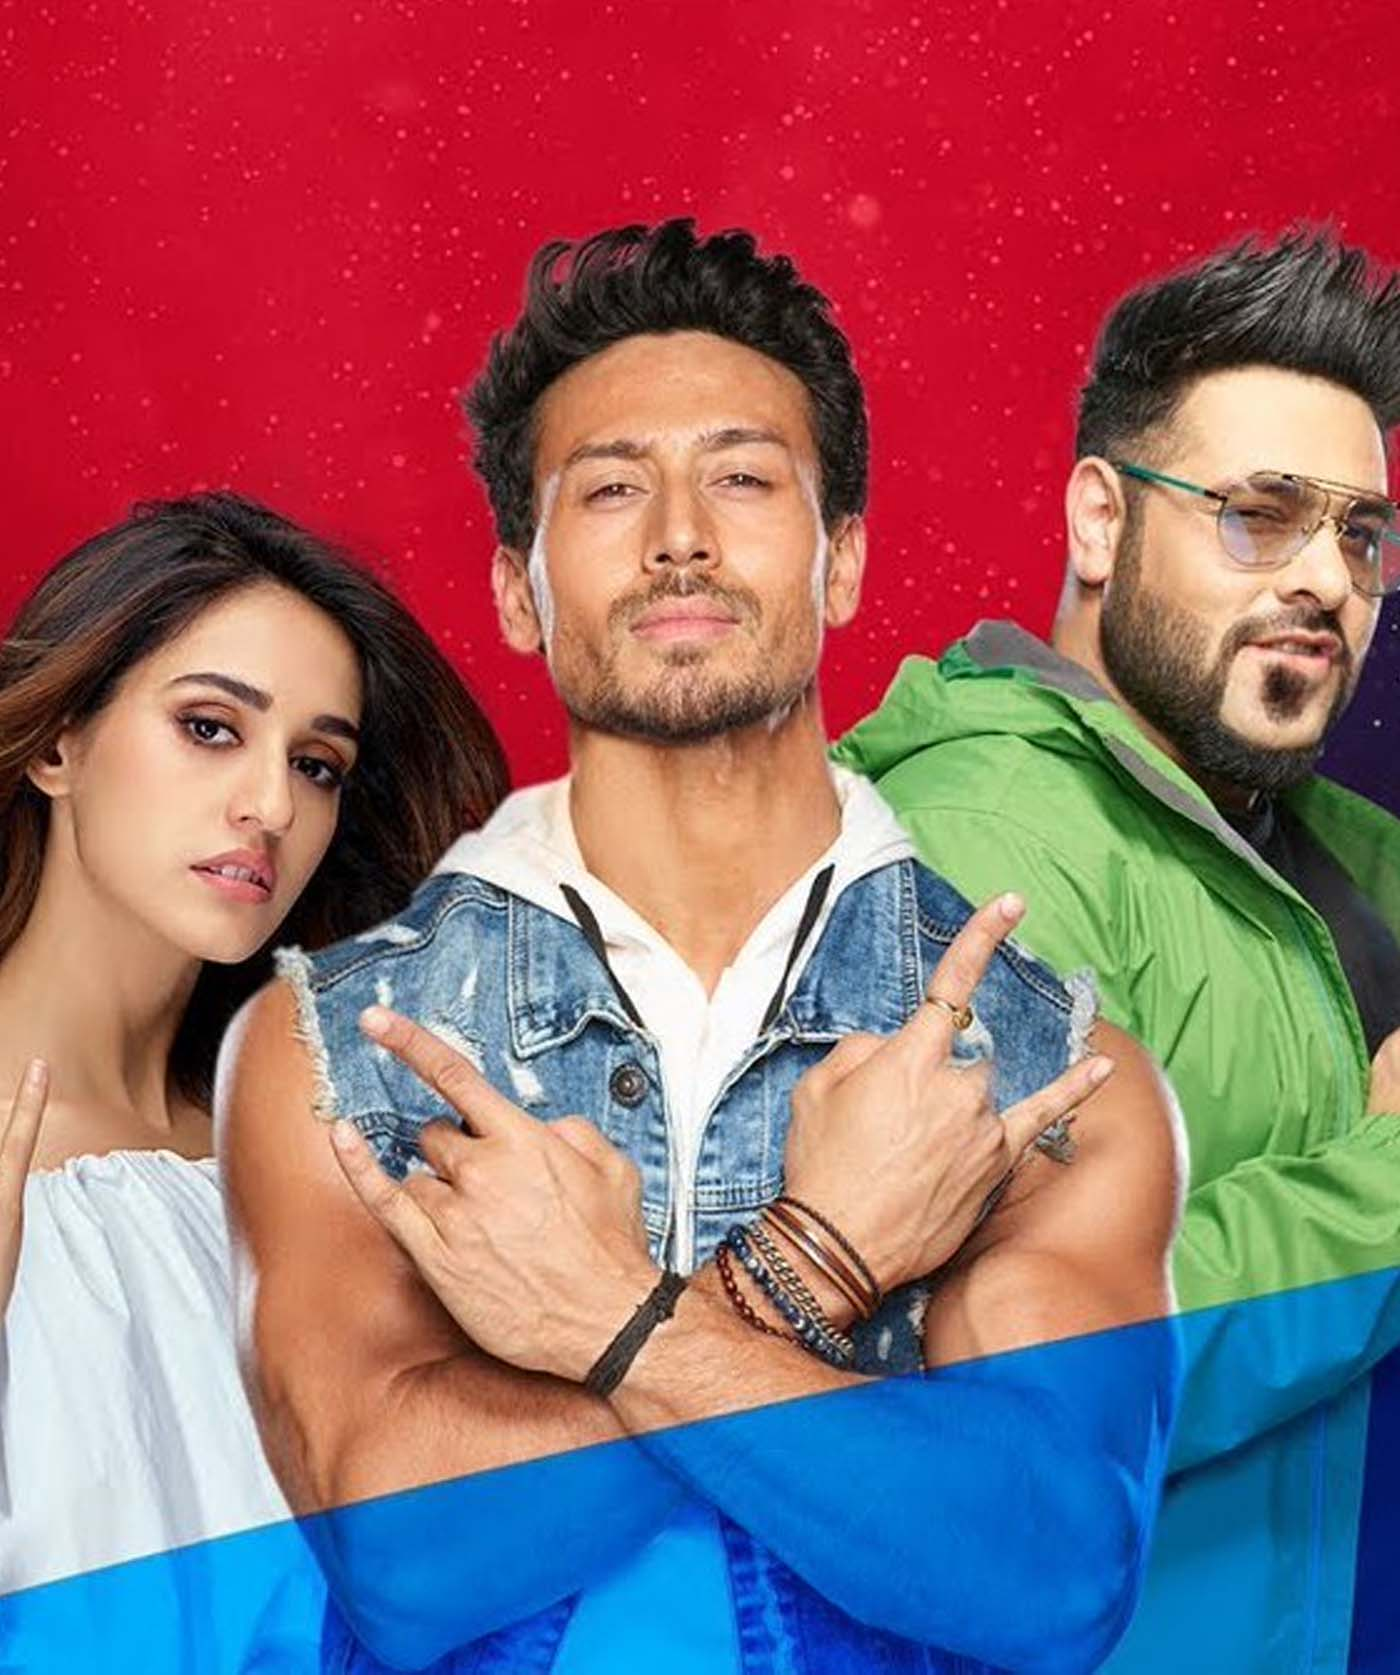 Har Ghoont Mein Swag Mp3 Song Download in HD For Free